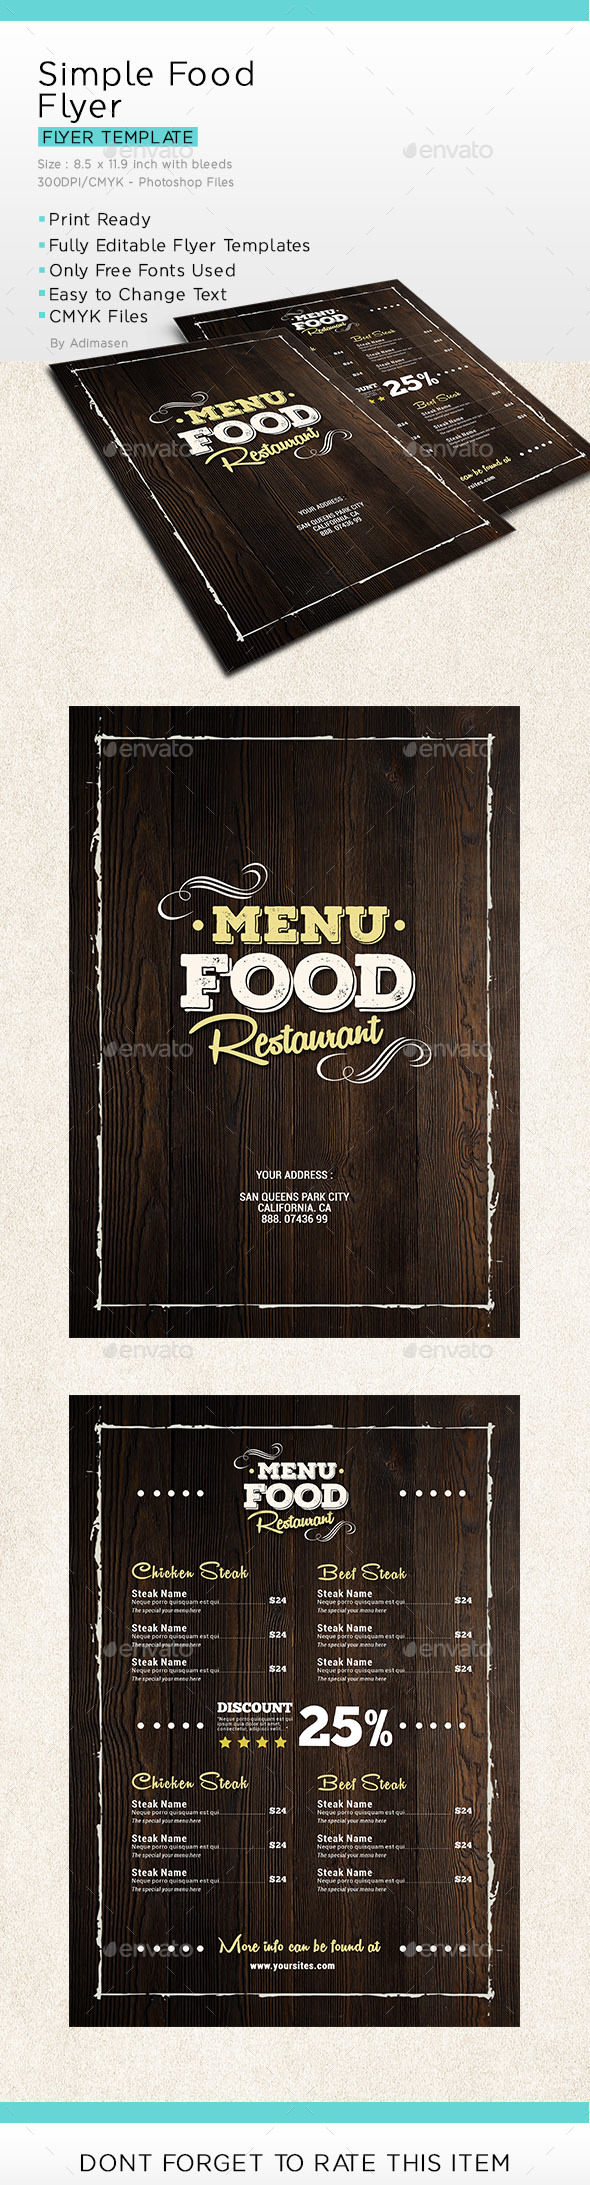 Simple Food Menu Flyer